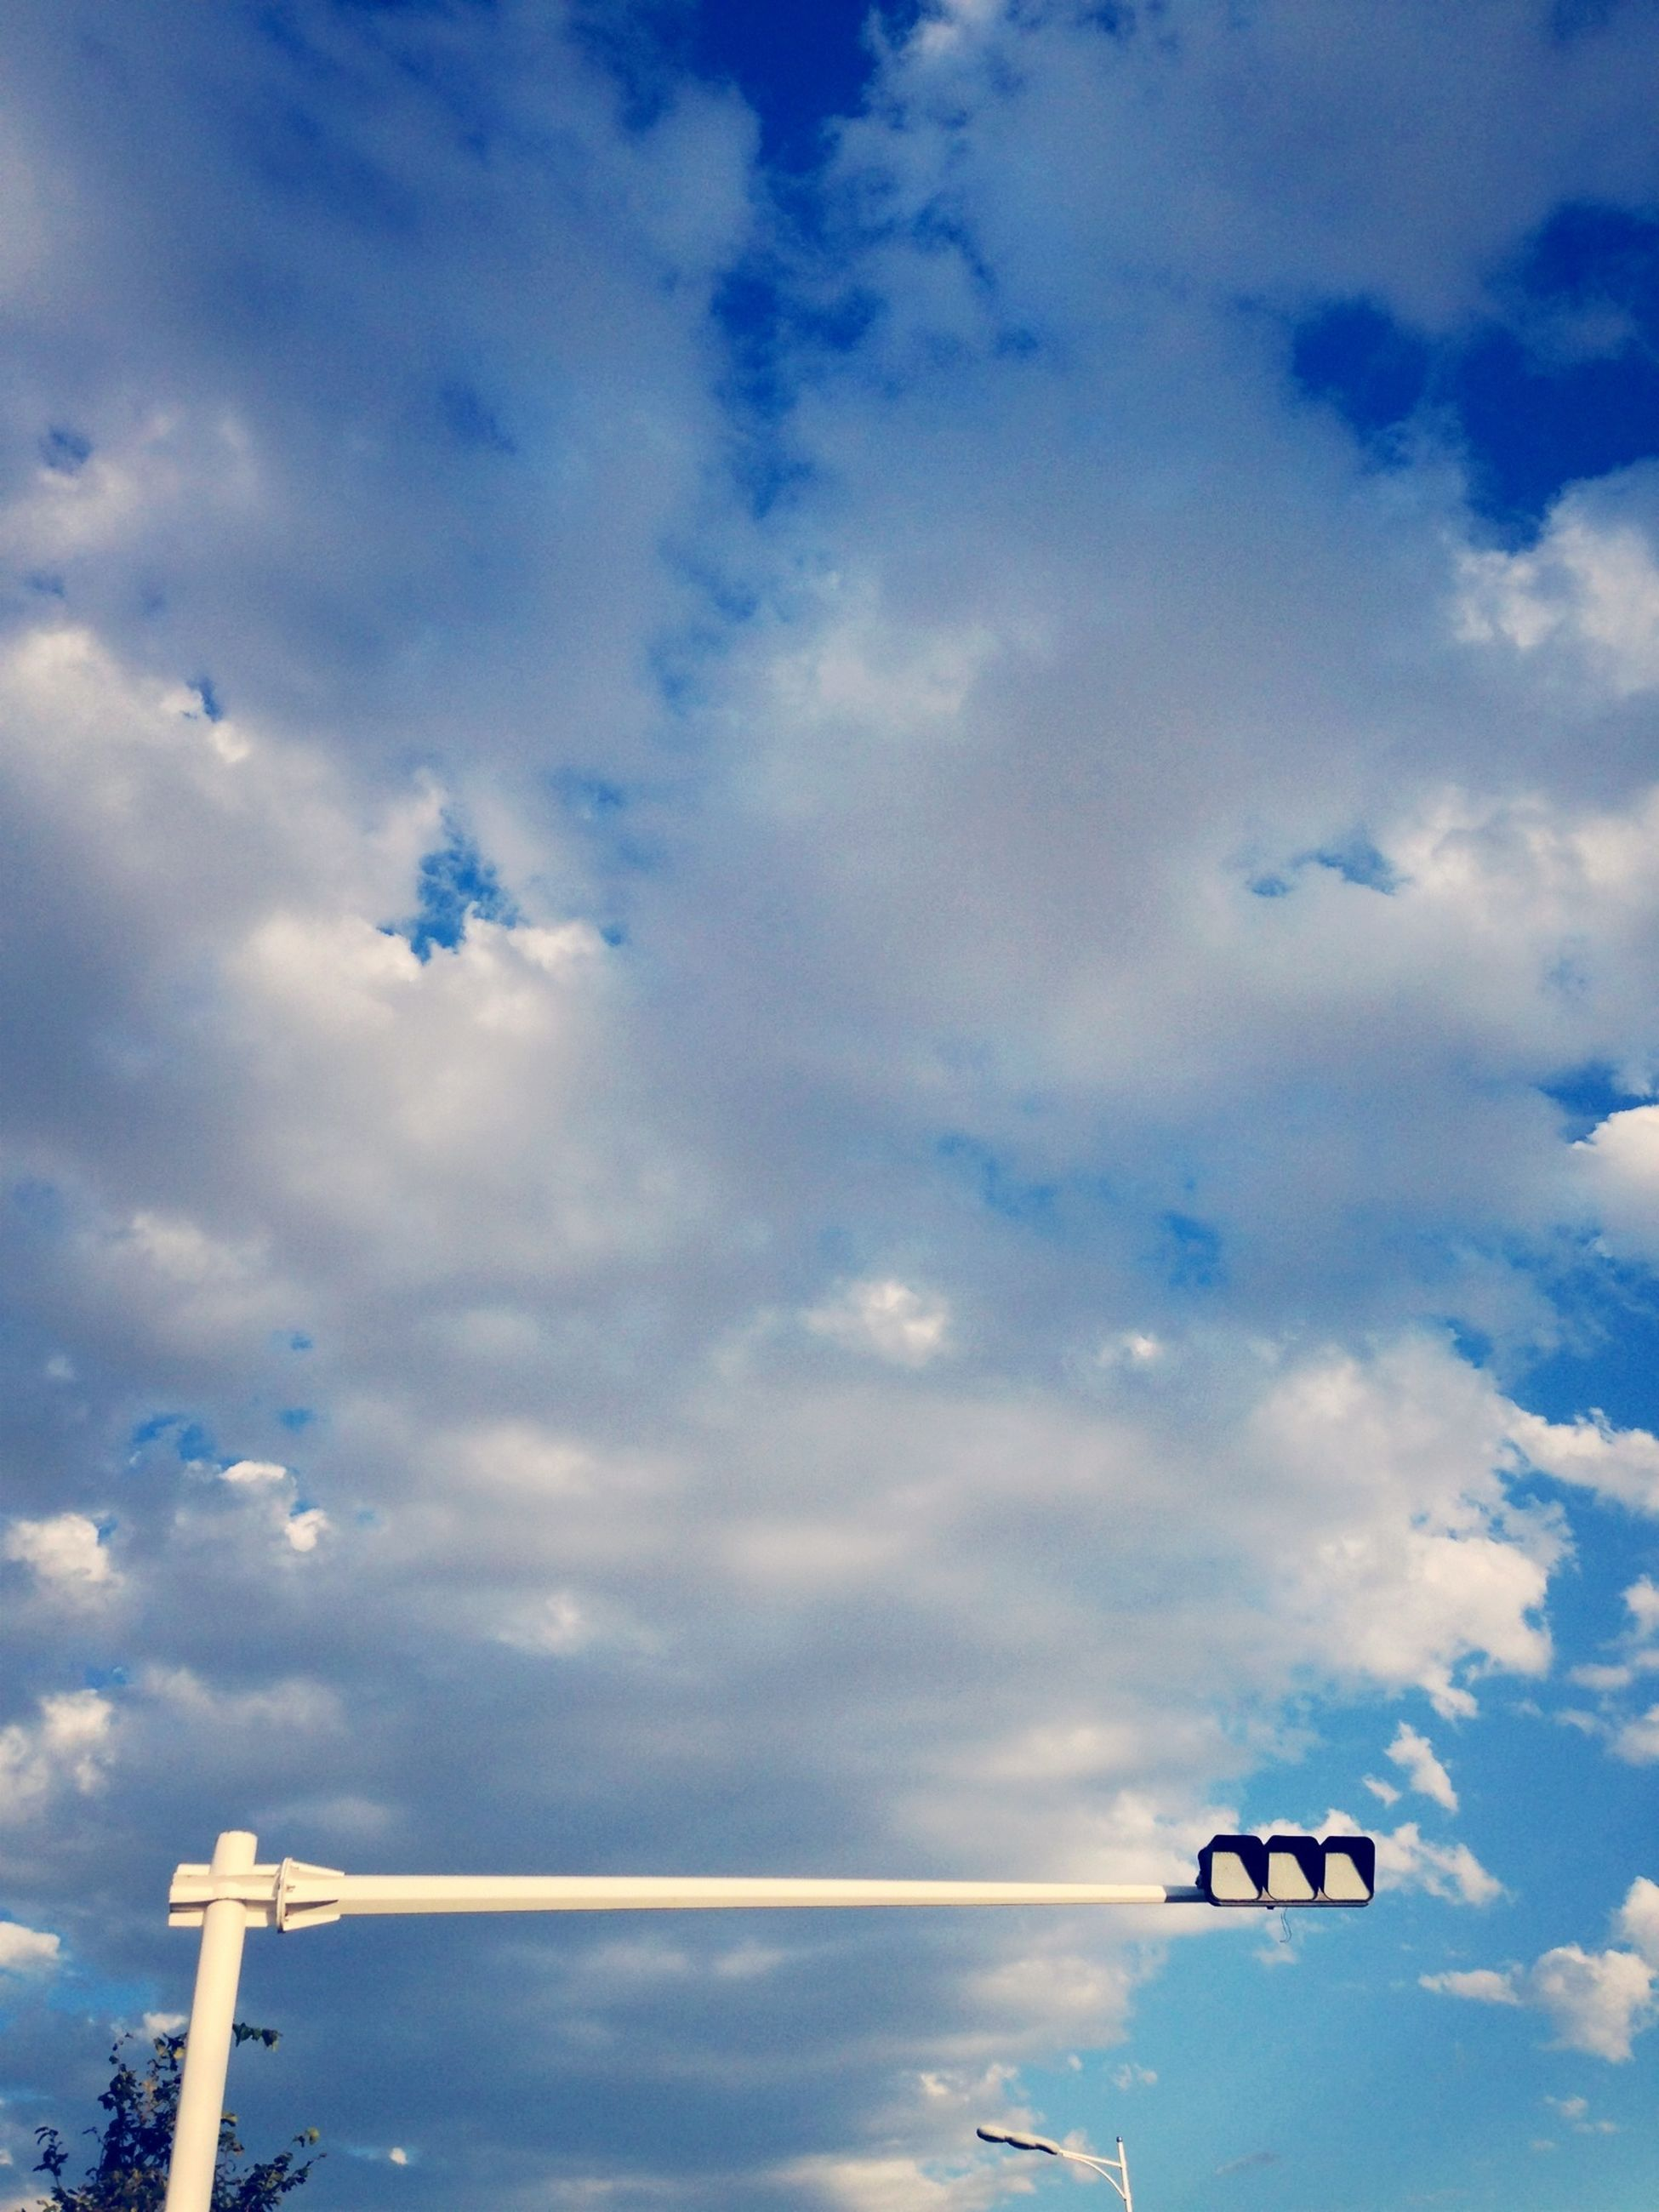 low angle view, sky, cloud - sky, blue, cloudy, cloud, transportation, street light, technology, day, outdoors, no people, nature, mode of transport, lighting equipment, communication, airplane, high section, cloudscape, electricity